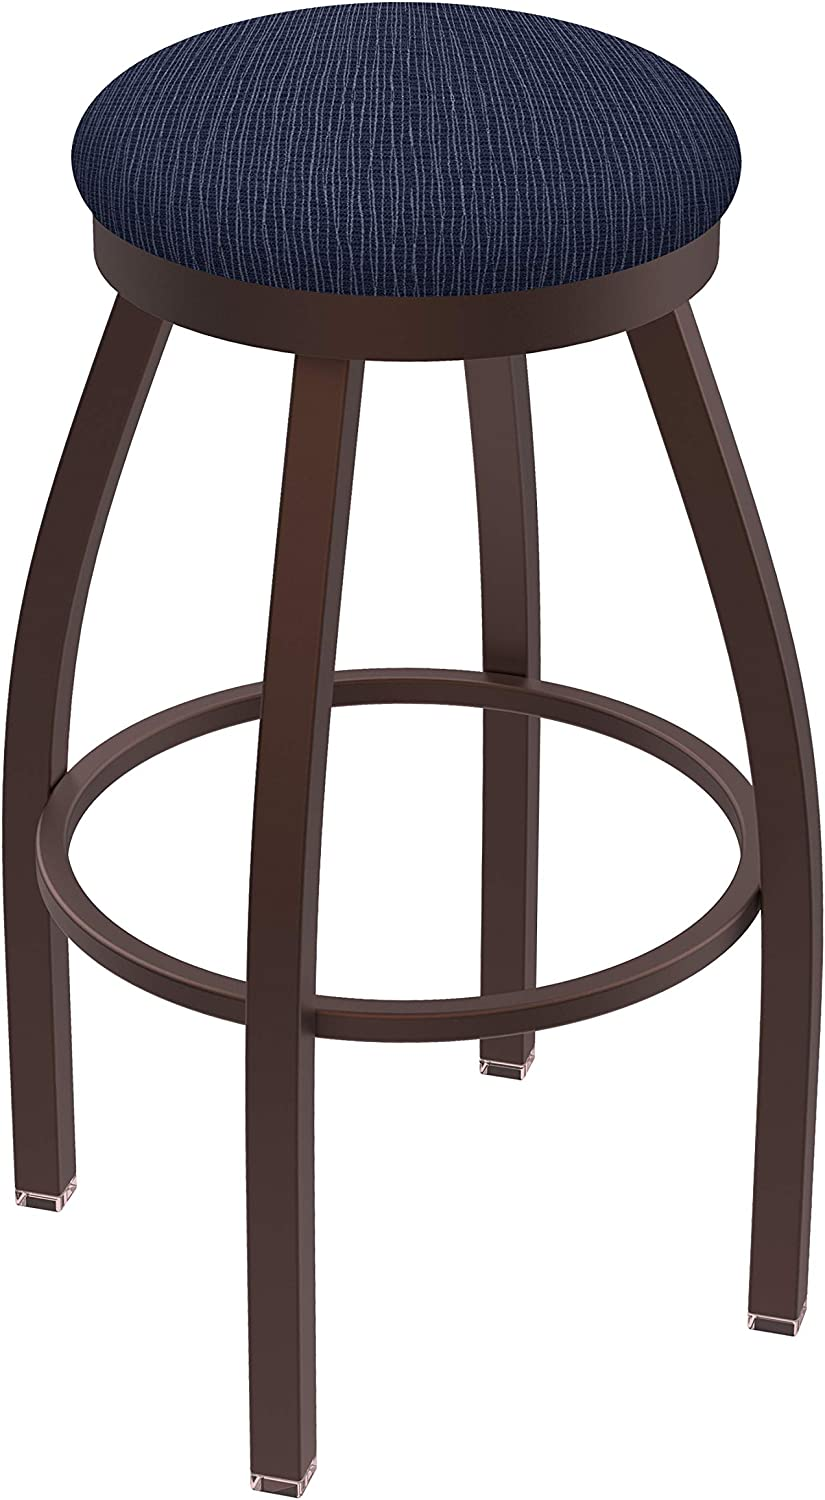 Holland Bar Stool Co. 80225BZAxsDnm 802 Misha Counter Stool, 25 Seat Height, Graph Anchor